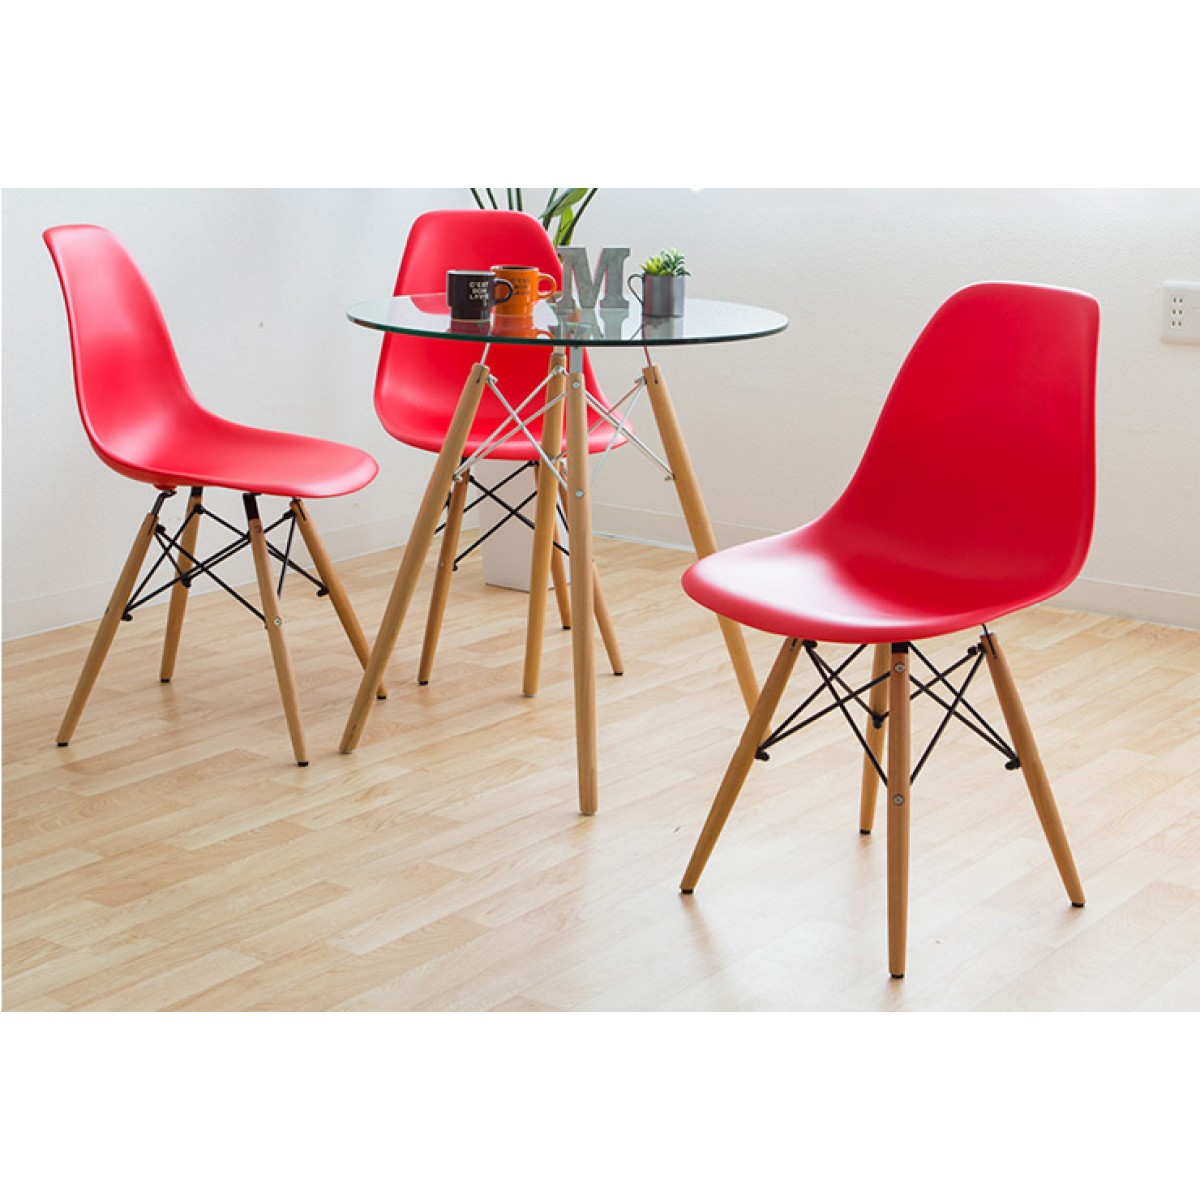 Eames Style Dsw Molded Red Plastic Dining Shell Chair With Wood Eiffel Legs